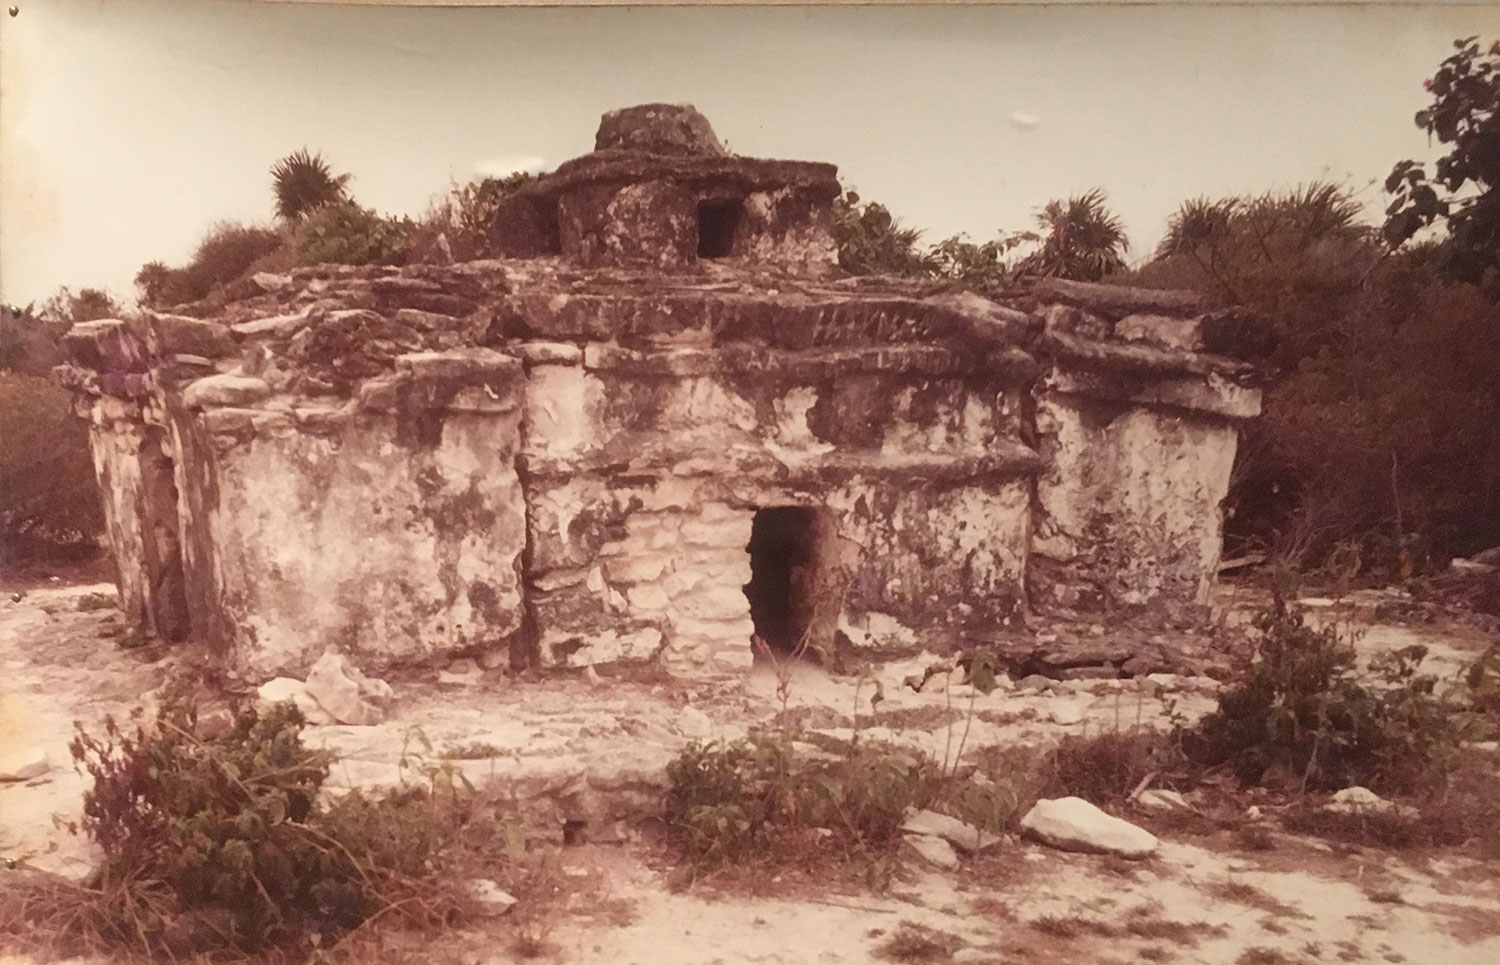 Hammocks_and_Ruins_What_to_Do_Mexico_Maya_Cozumel_Museum_29.jpg